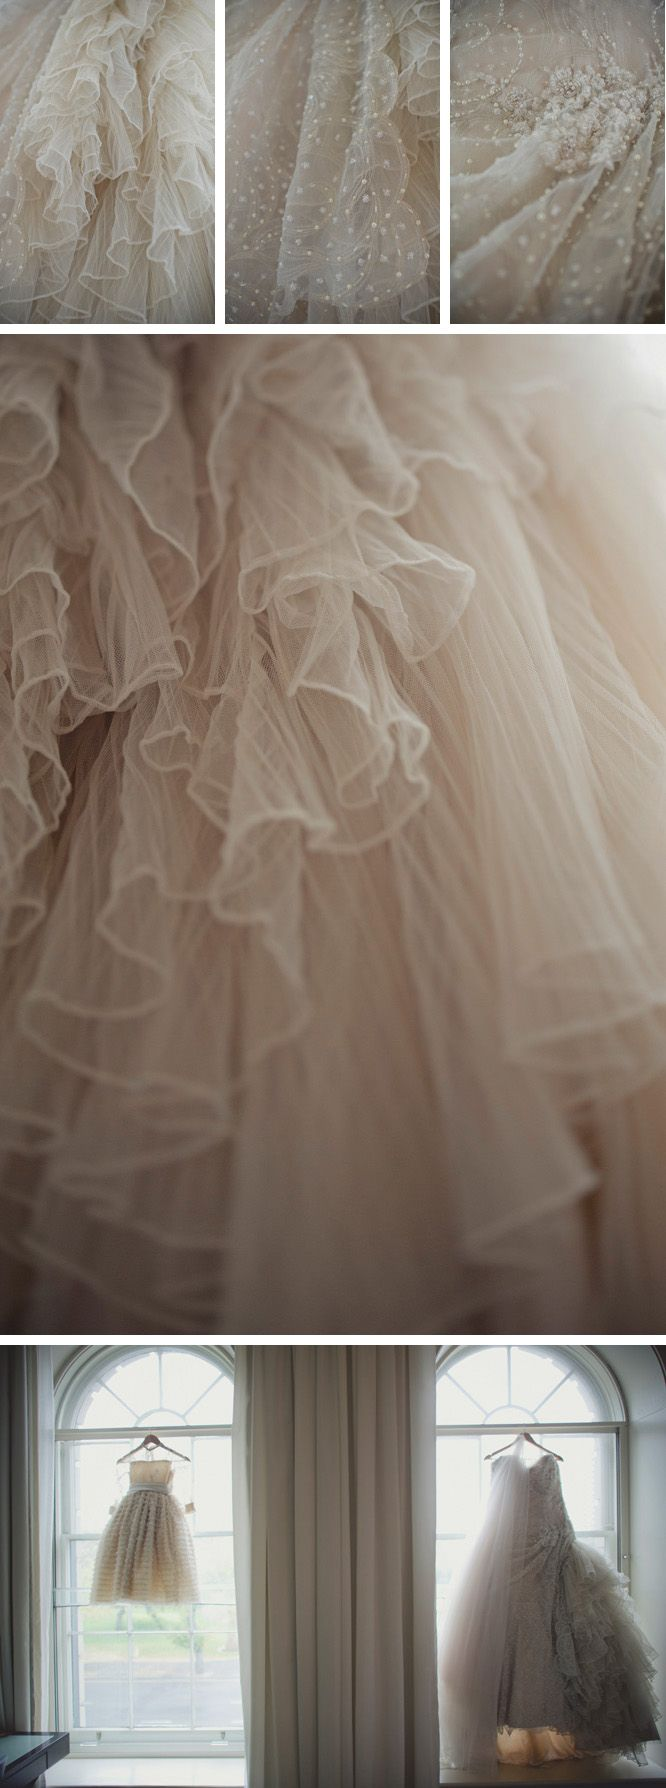 I adore swiss dot and tulle!